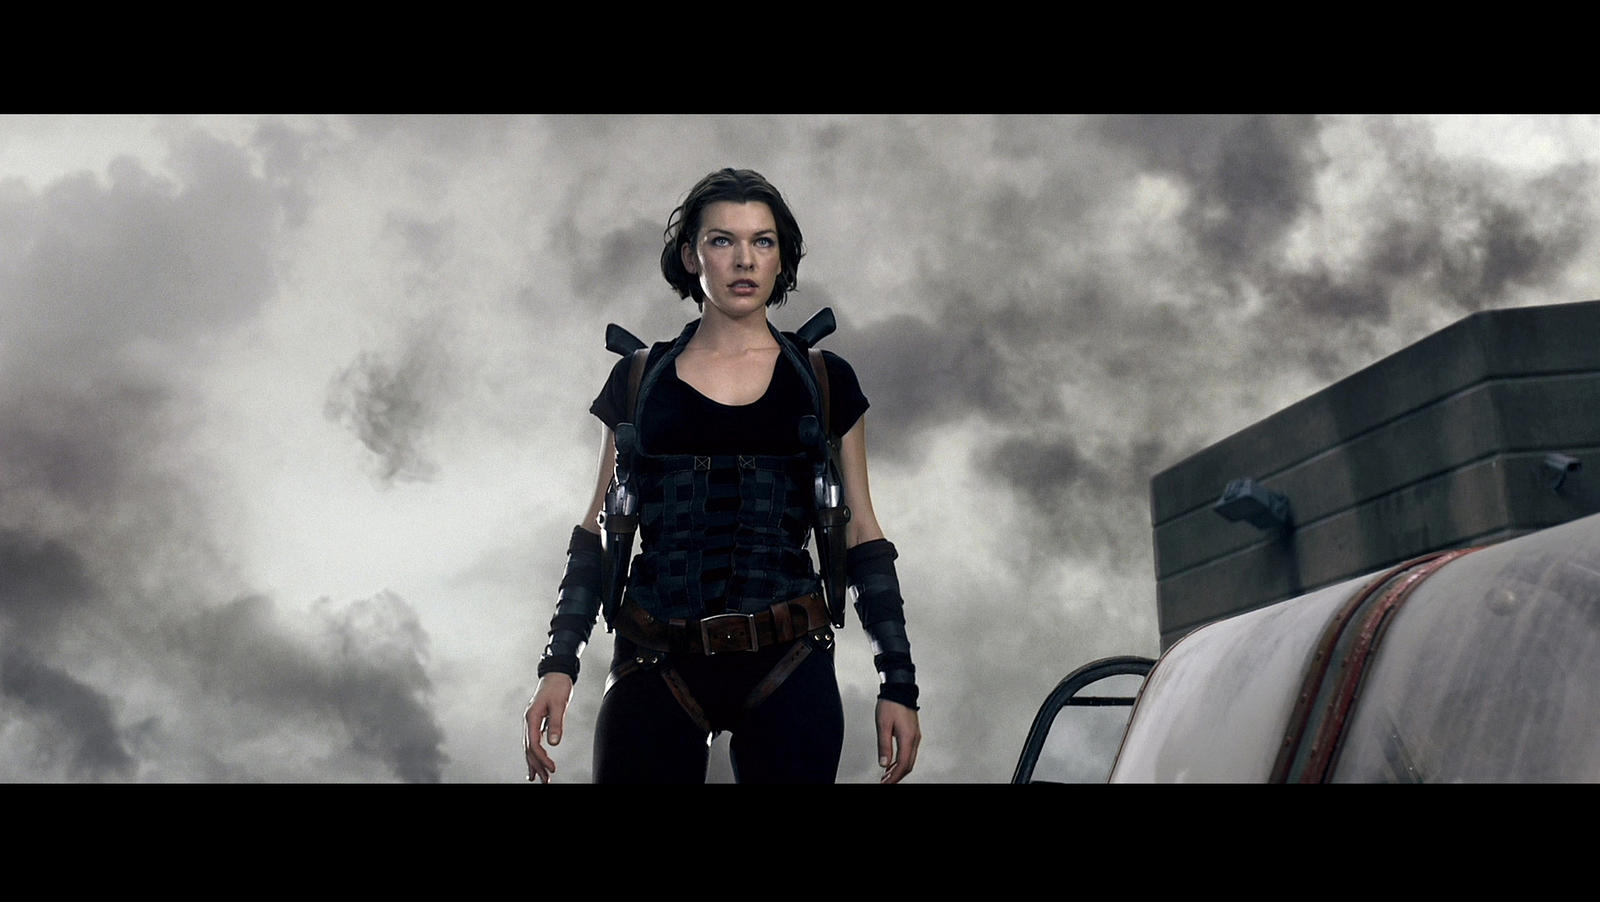 Resident evil afterlife alice 7 by newyunggun on deviantart - Resident evil afterlife wallpaper ...